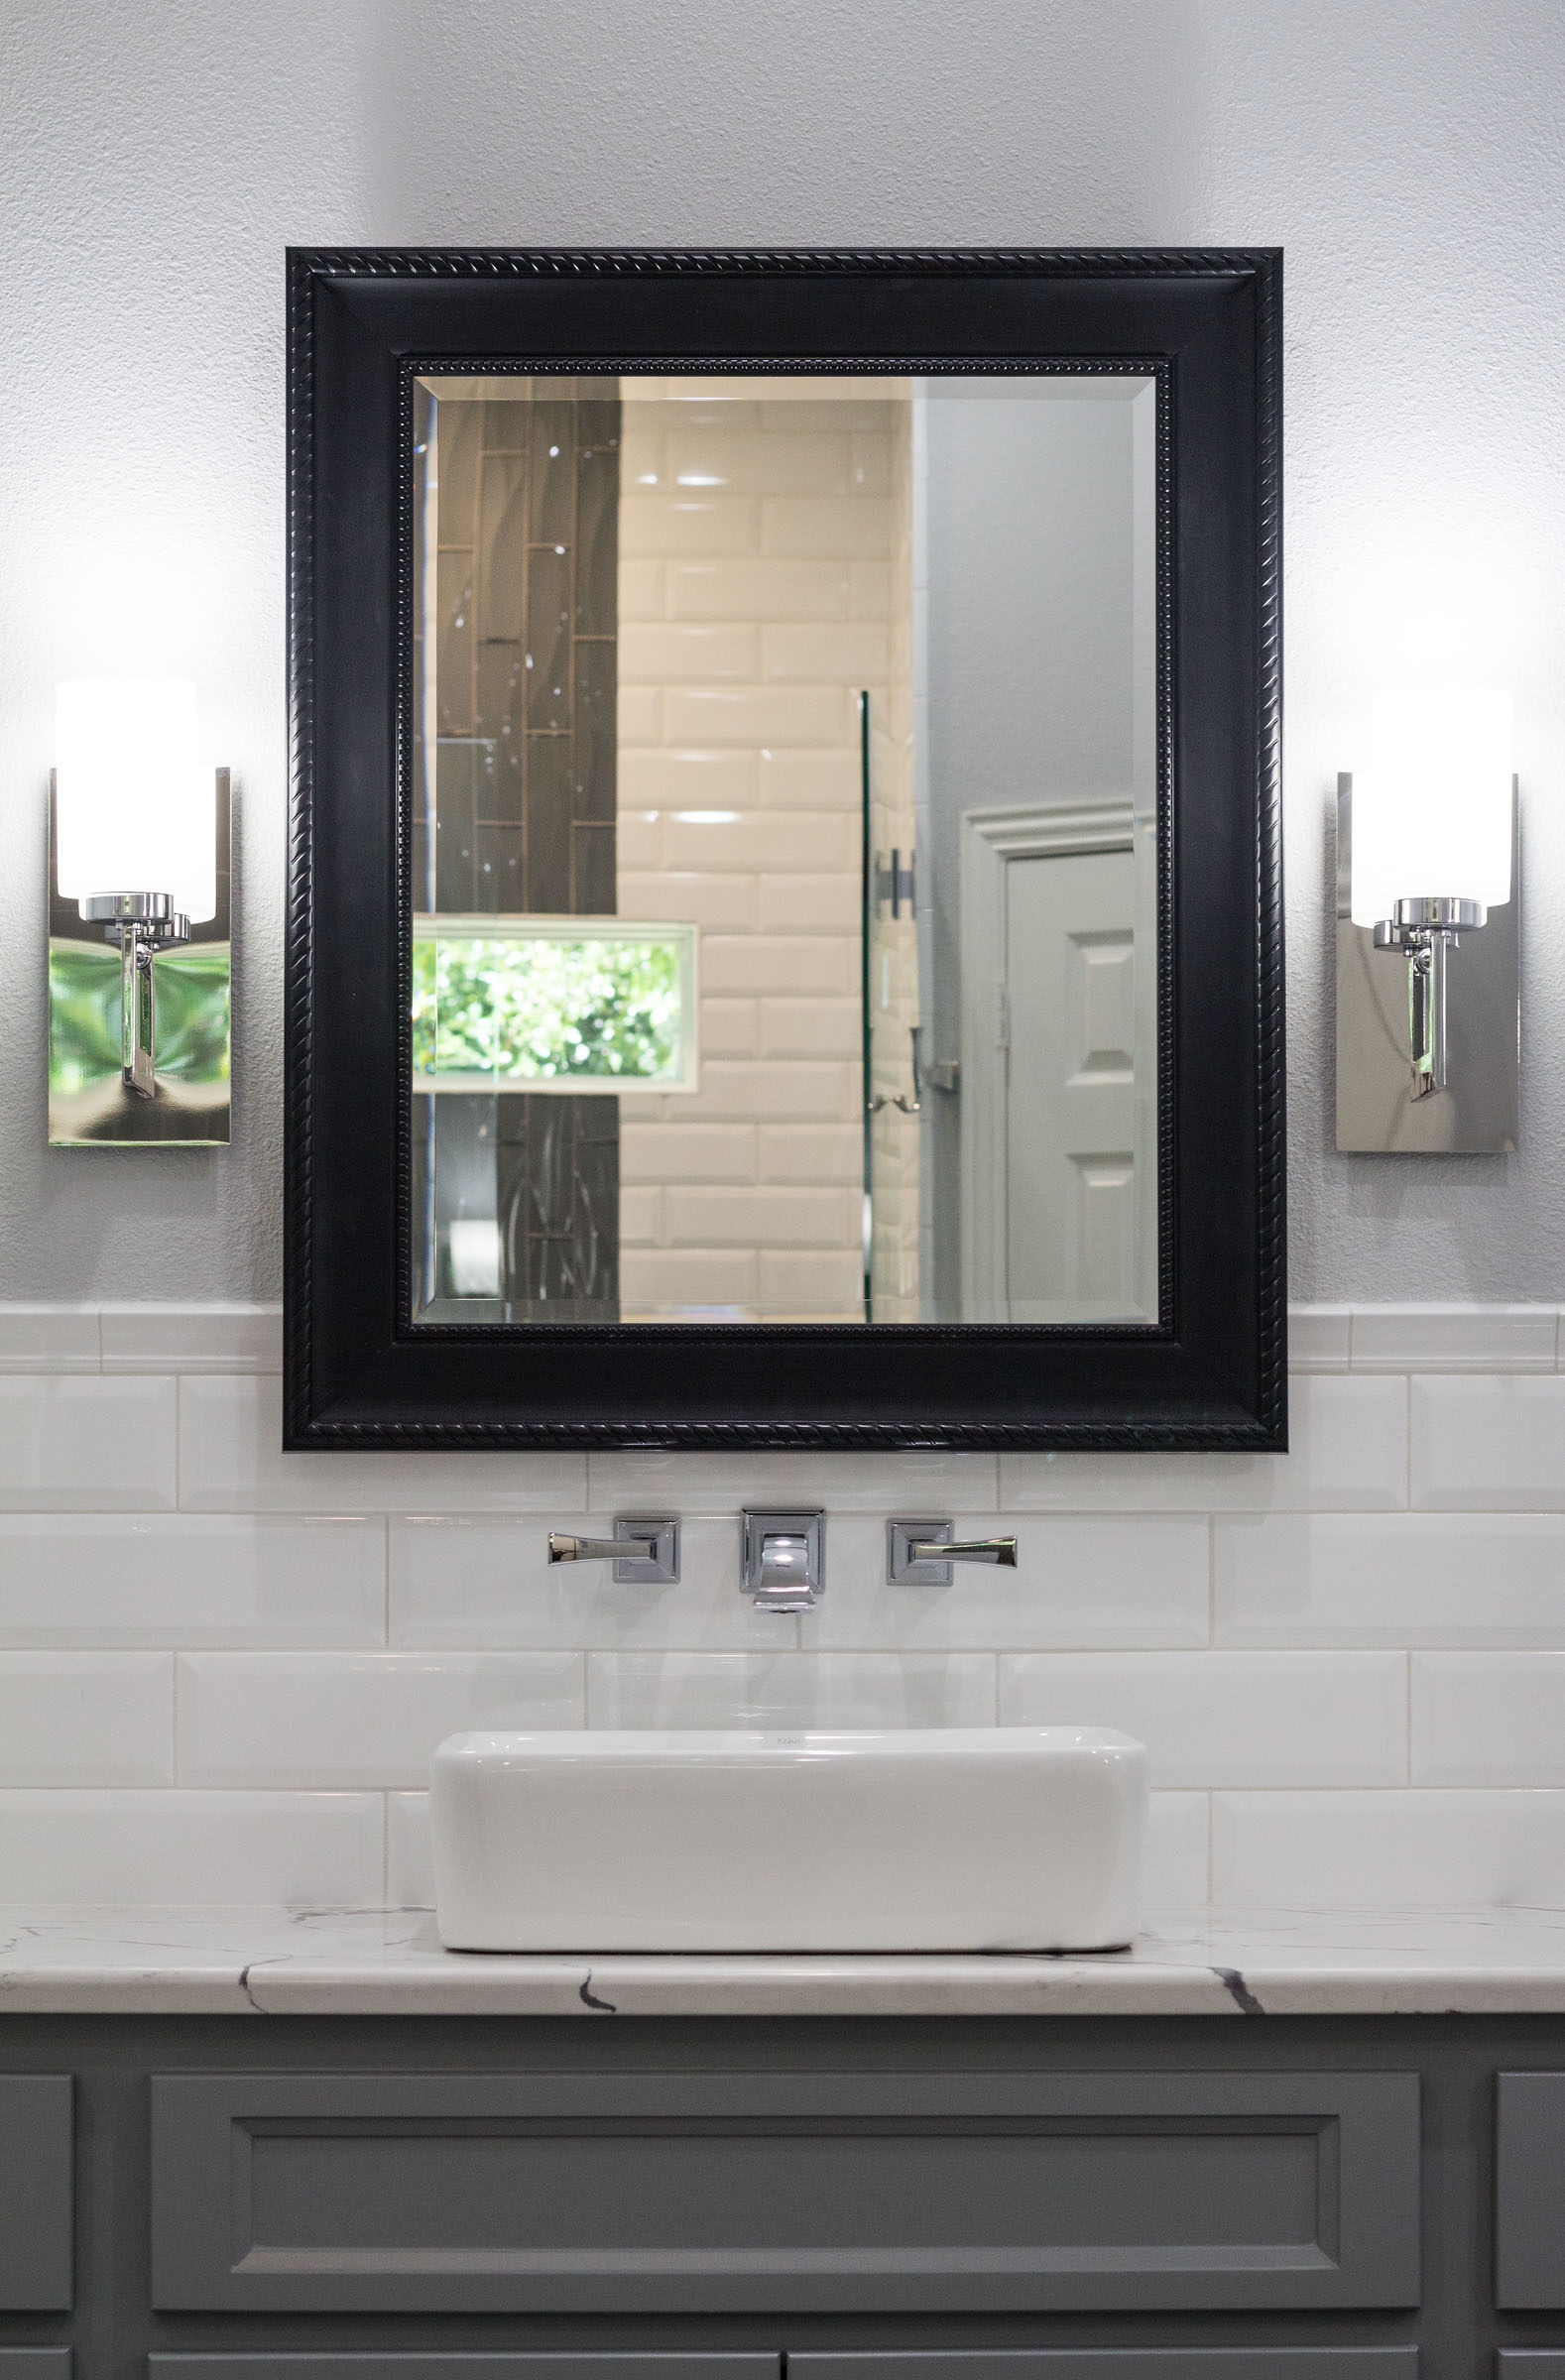 White subway tile backsplash, pedestal sink, chrome hardware, black trimmed mirror, grey shaker cabinets